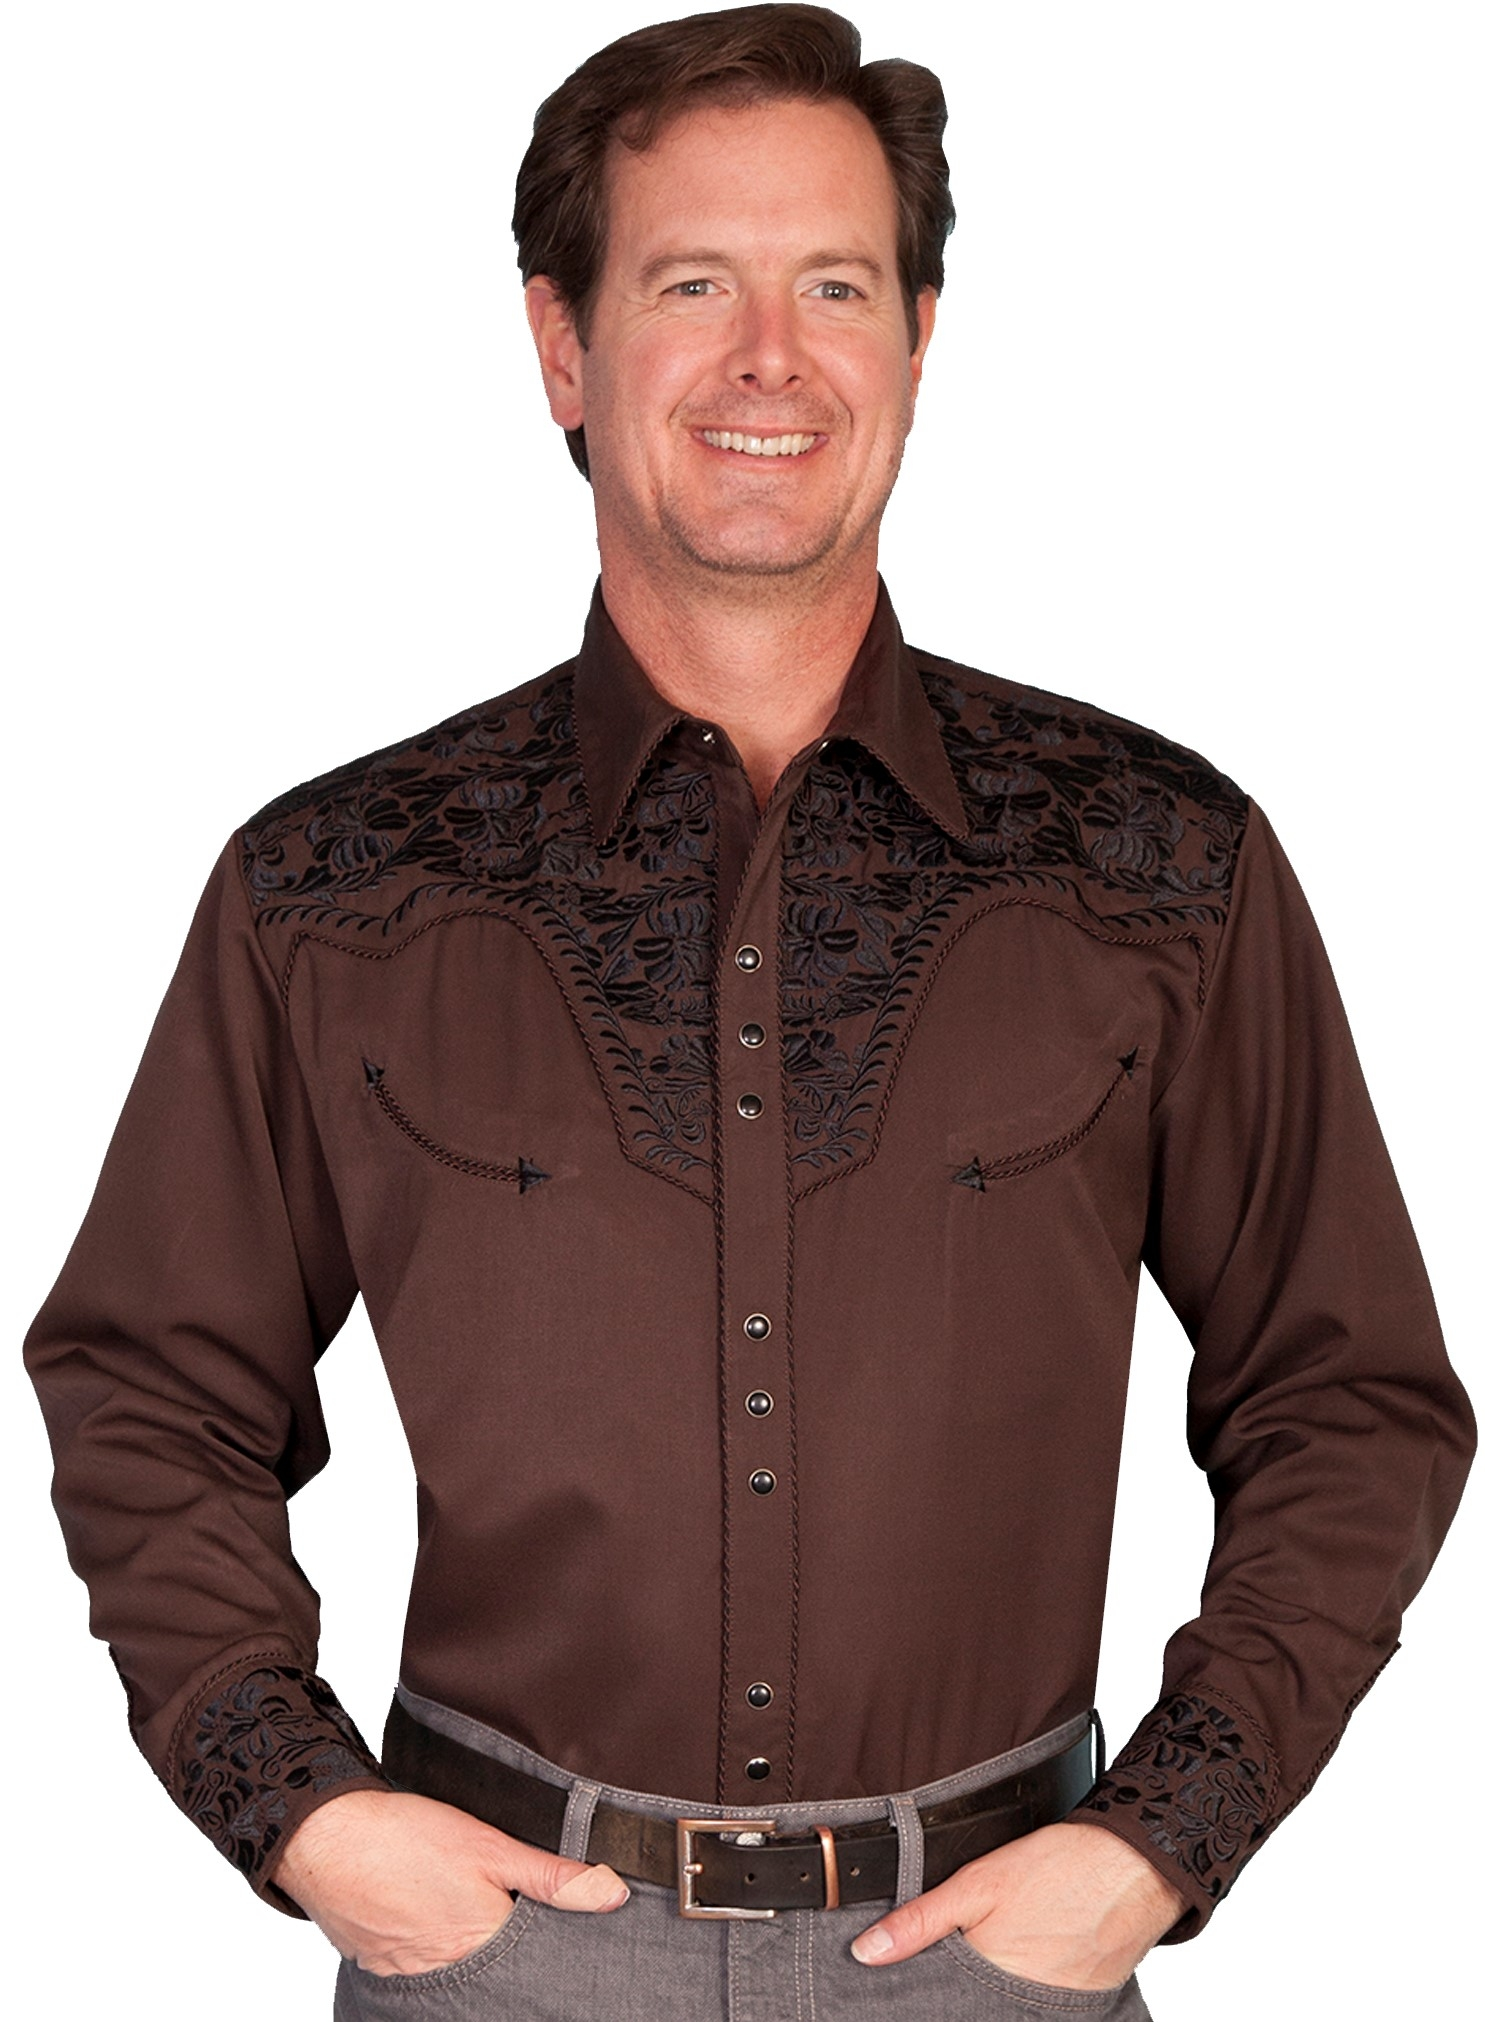 Mens solid color western shirts long sleeve shirts for Mens chocolate brown shirt